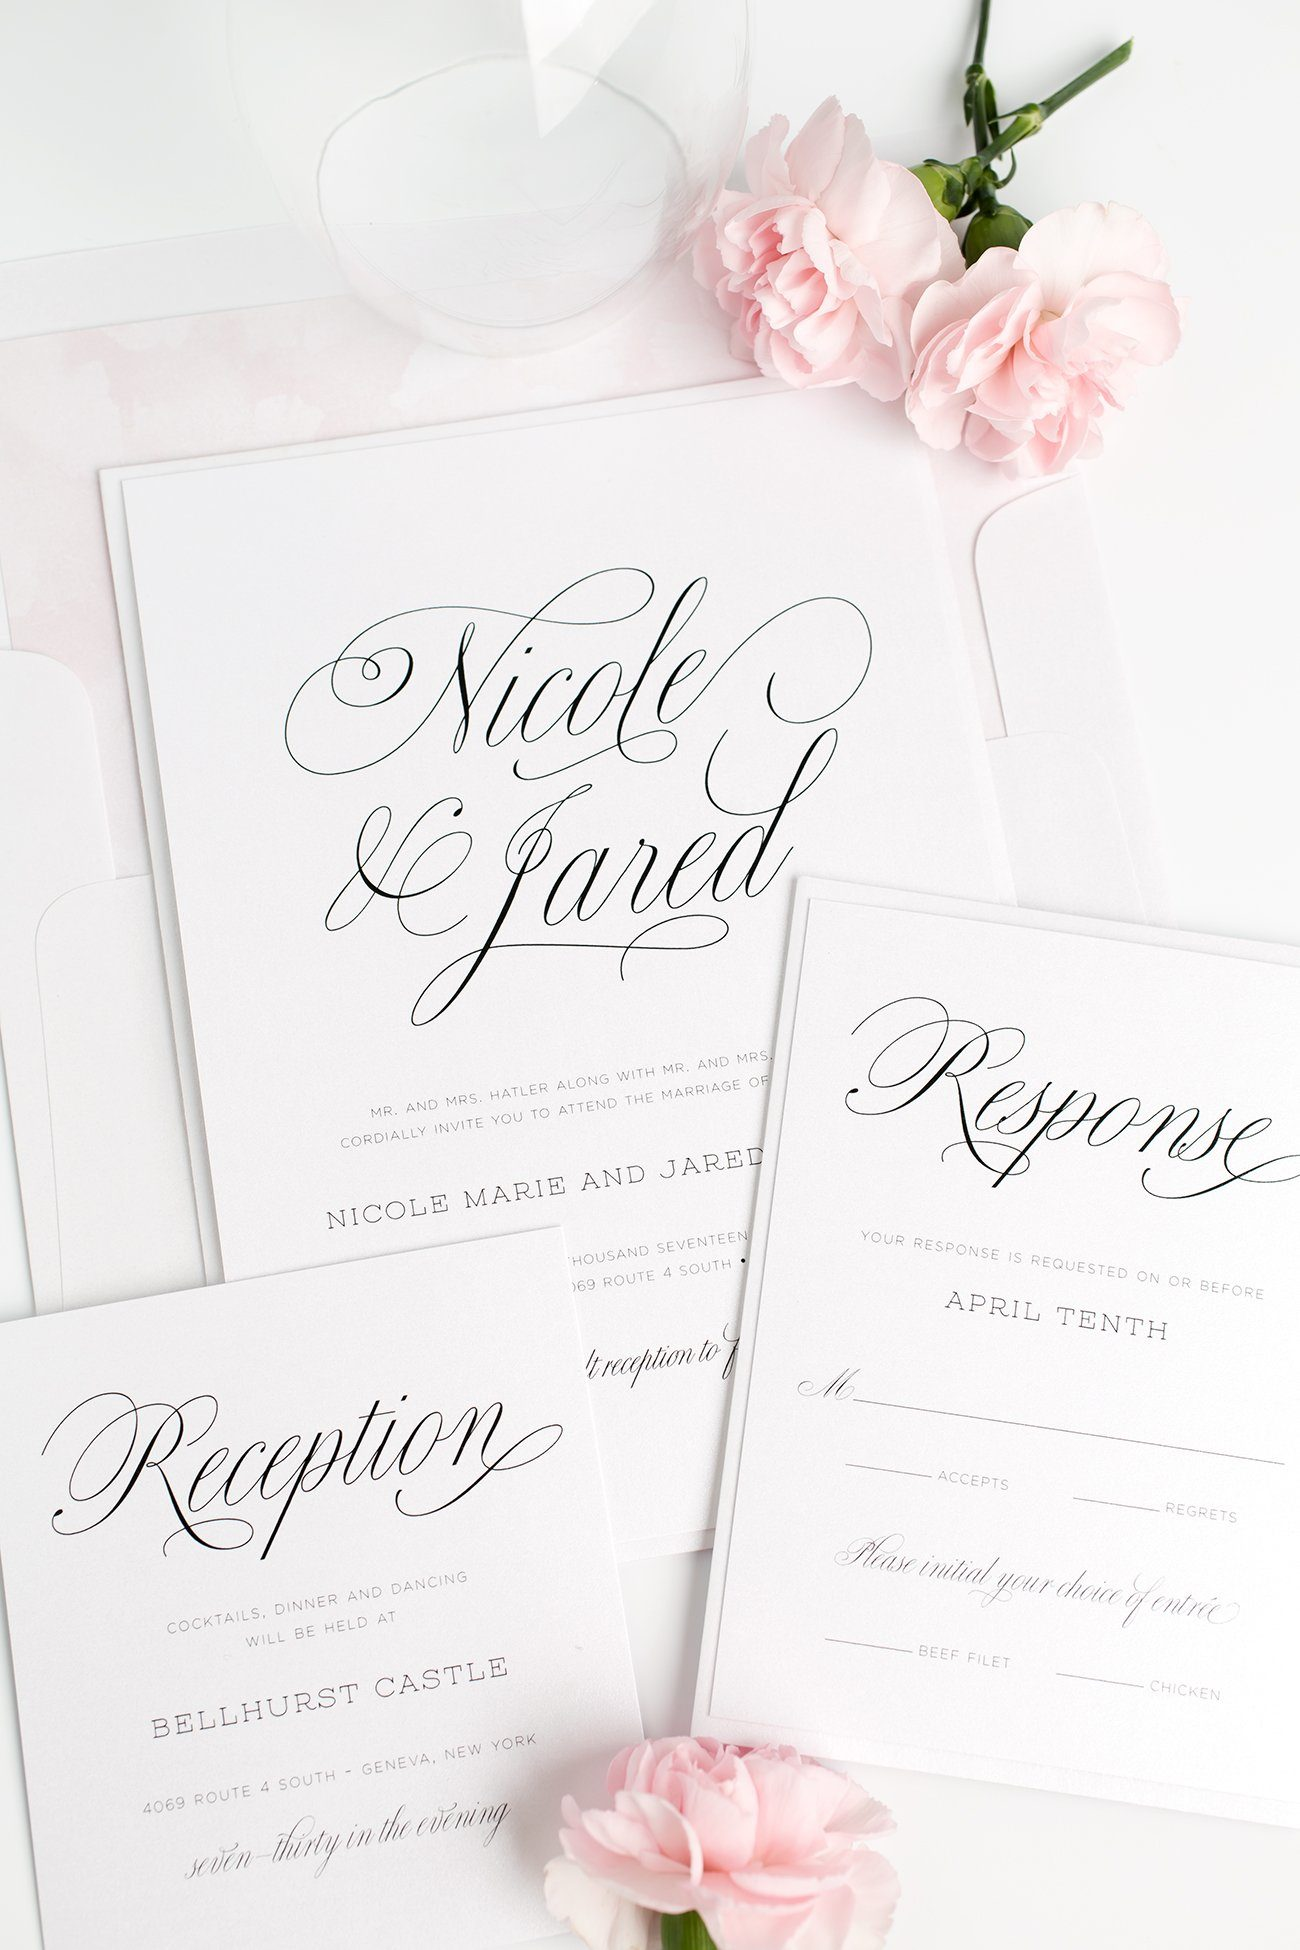 Blush Pink Garden Wedding Invitations with a Floral Watercolor Envelope Liner